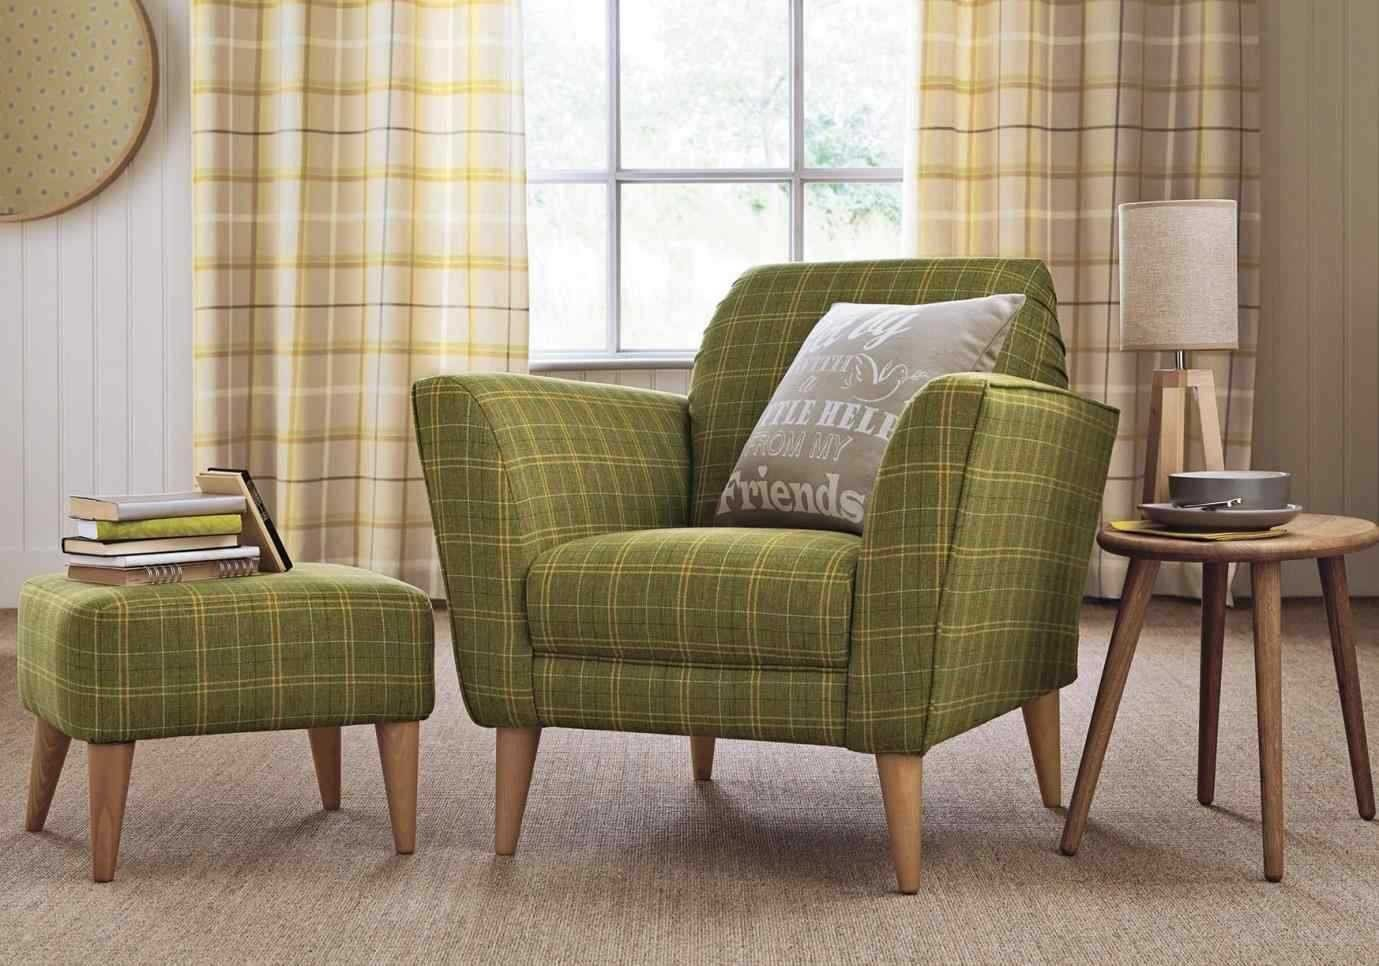 Most Comfortable Living Room Most fortable Living Room Chair Inspirations and Most